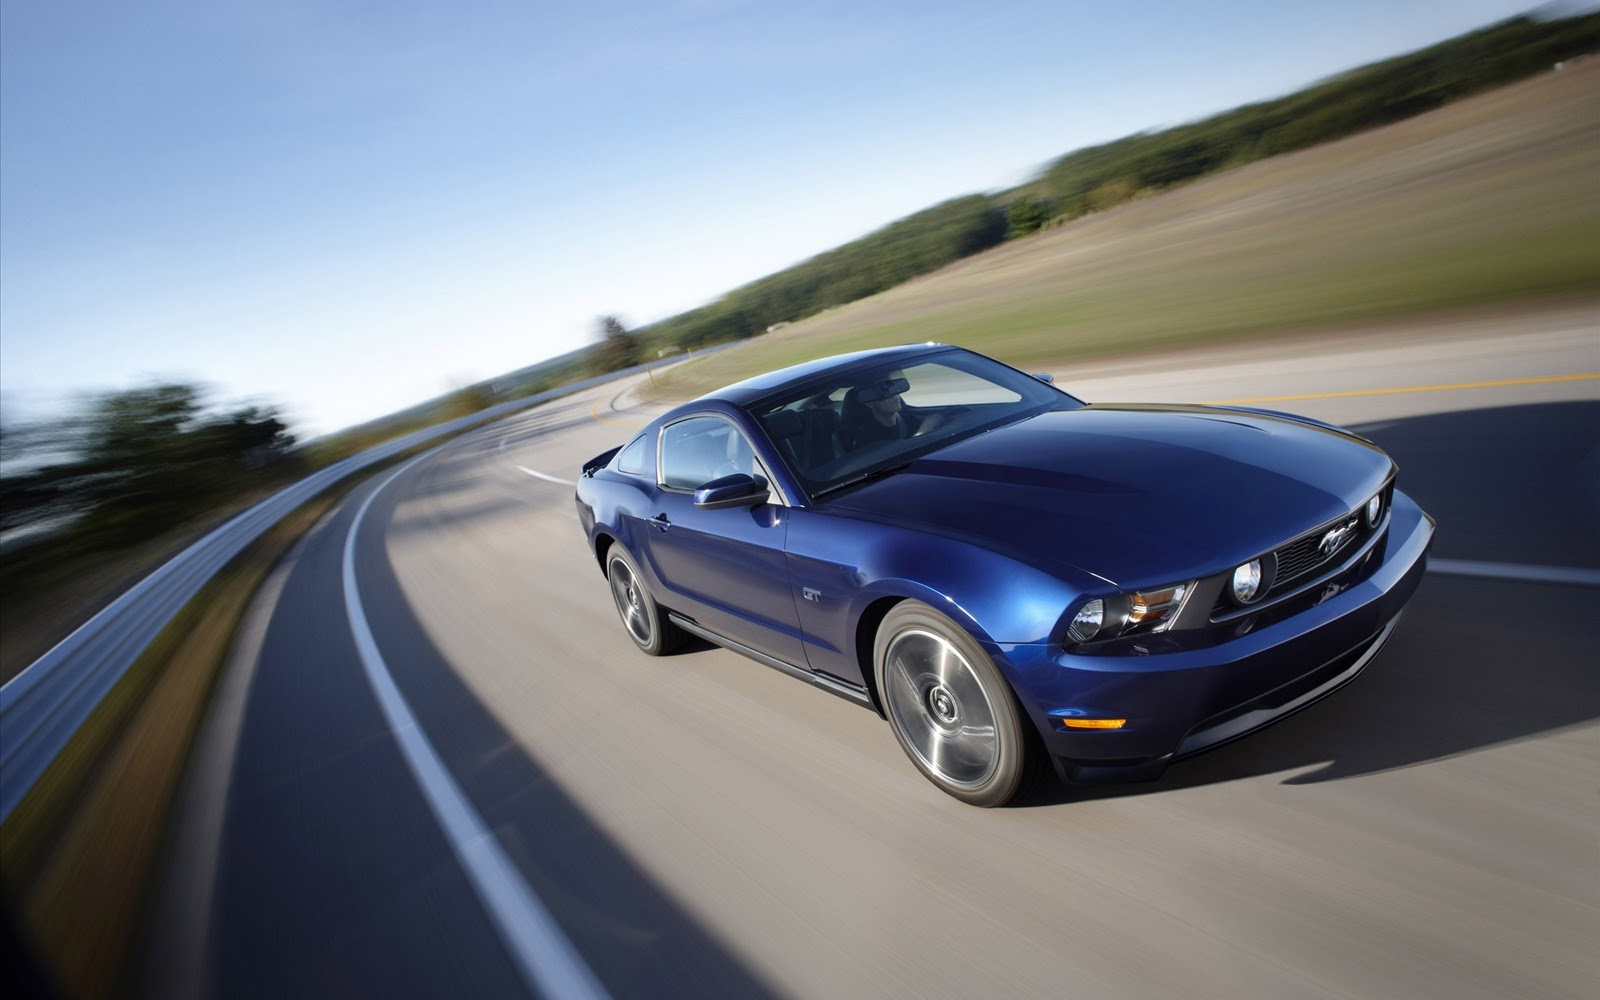 new cars%252c world most beautiful and fresh car wallpapers